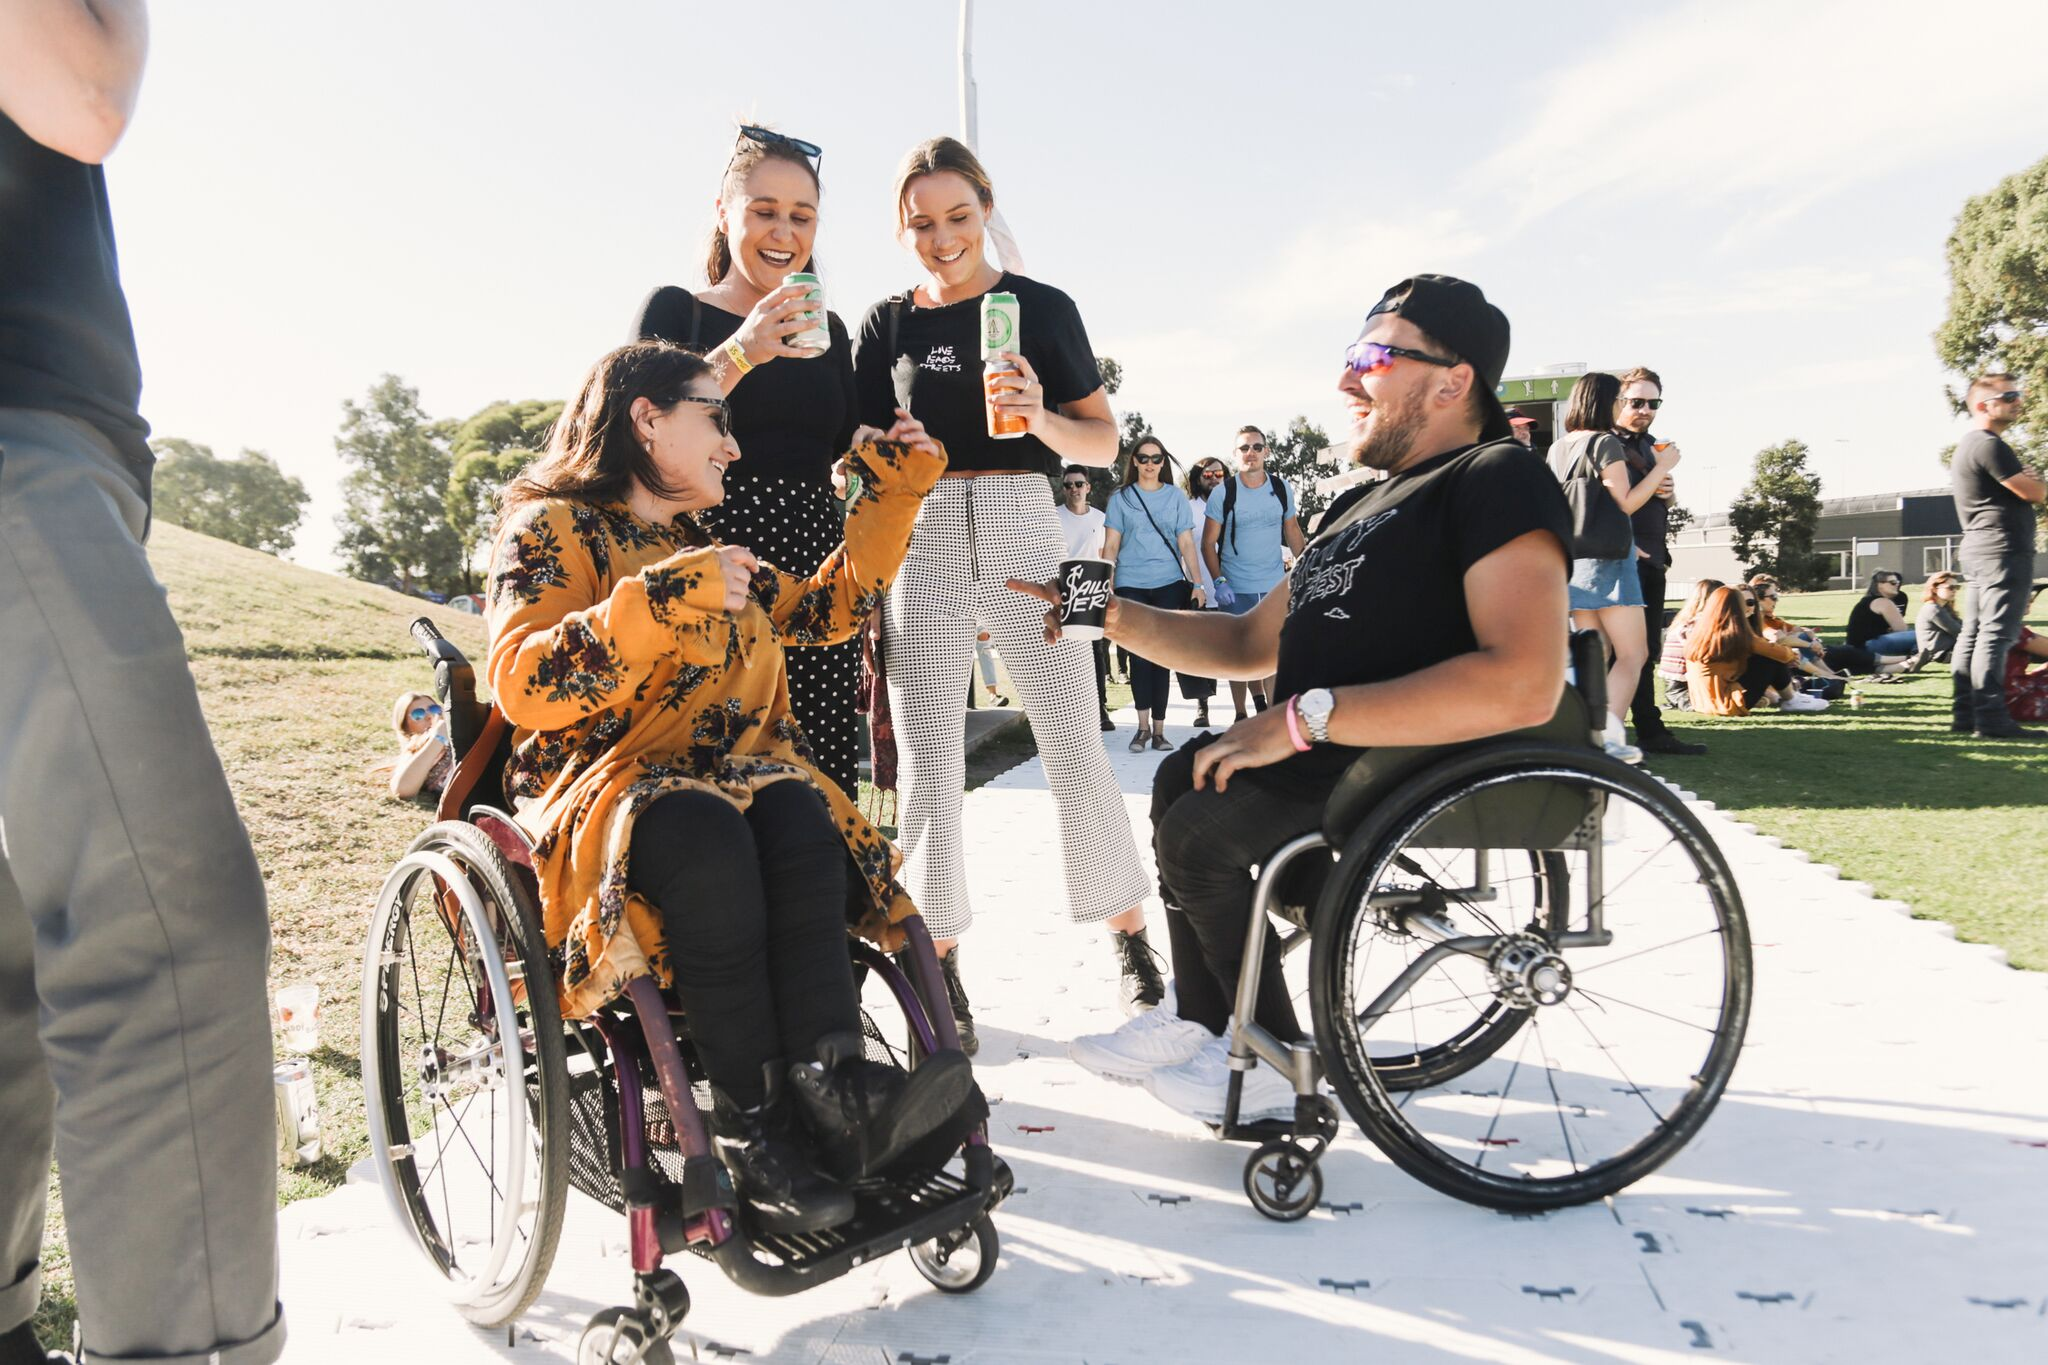 Dylan Alcott with festival goers. Credit: Alex Drewniak